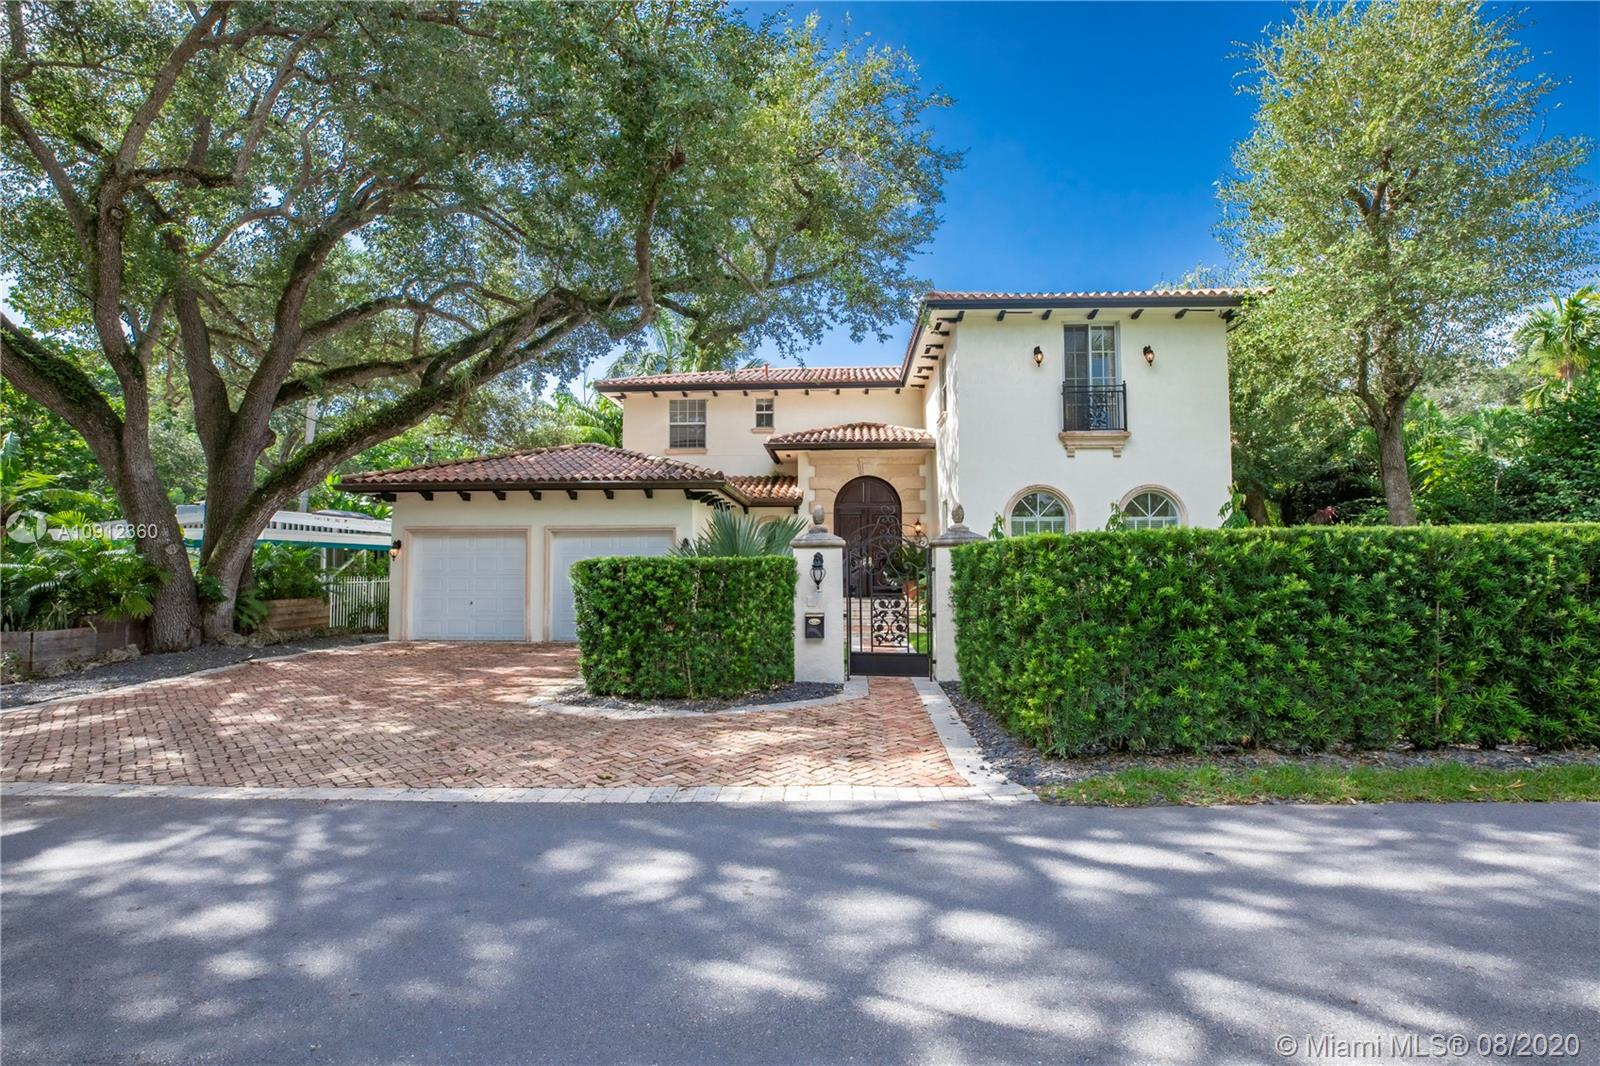 """Italian grandeur reminiscent of a sunny Tuscan villa sits on large lot in South Coconut Grove. Loquat is a favorite quintessential tree lined Grove street that is central and close to all your favorite spots. Exquisitely tasteful 6 bed/5.5 bath open plan """"pumps up the volume"""" w/ dramatic high ceilings and coffered detailing. Art collectors will love the spacious walls! Upstairs has master w/ large balcony plus 3 bedrooms all w/ en suite baths and WICs. Downstairs has two additional bedrooms. Wide open living spaces allow for beautiful and comfortable natural light that grace the home all day long. Backyard boasts covered patio, large pool,and lots of green space. 2 Car Gar. LA SF is 4635 per appraiser. Effective age of home is from 2005 w/ small portion downstairs originally built in 1940."""